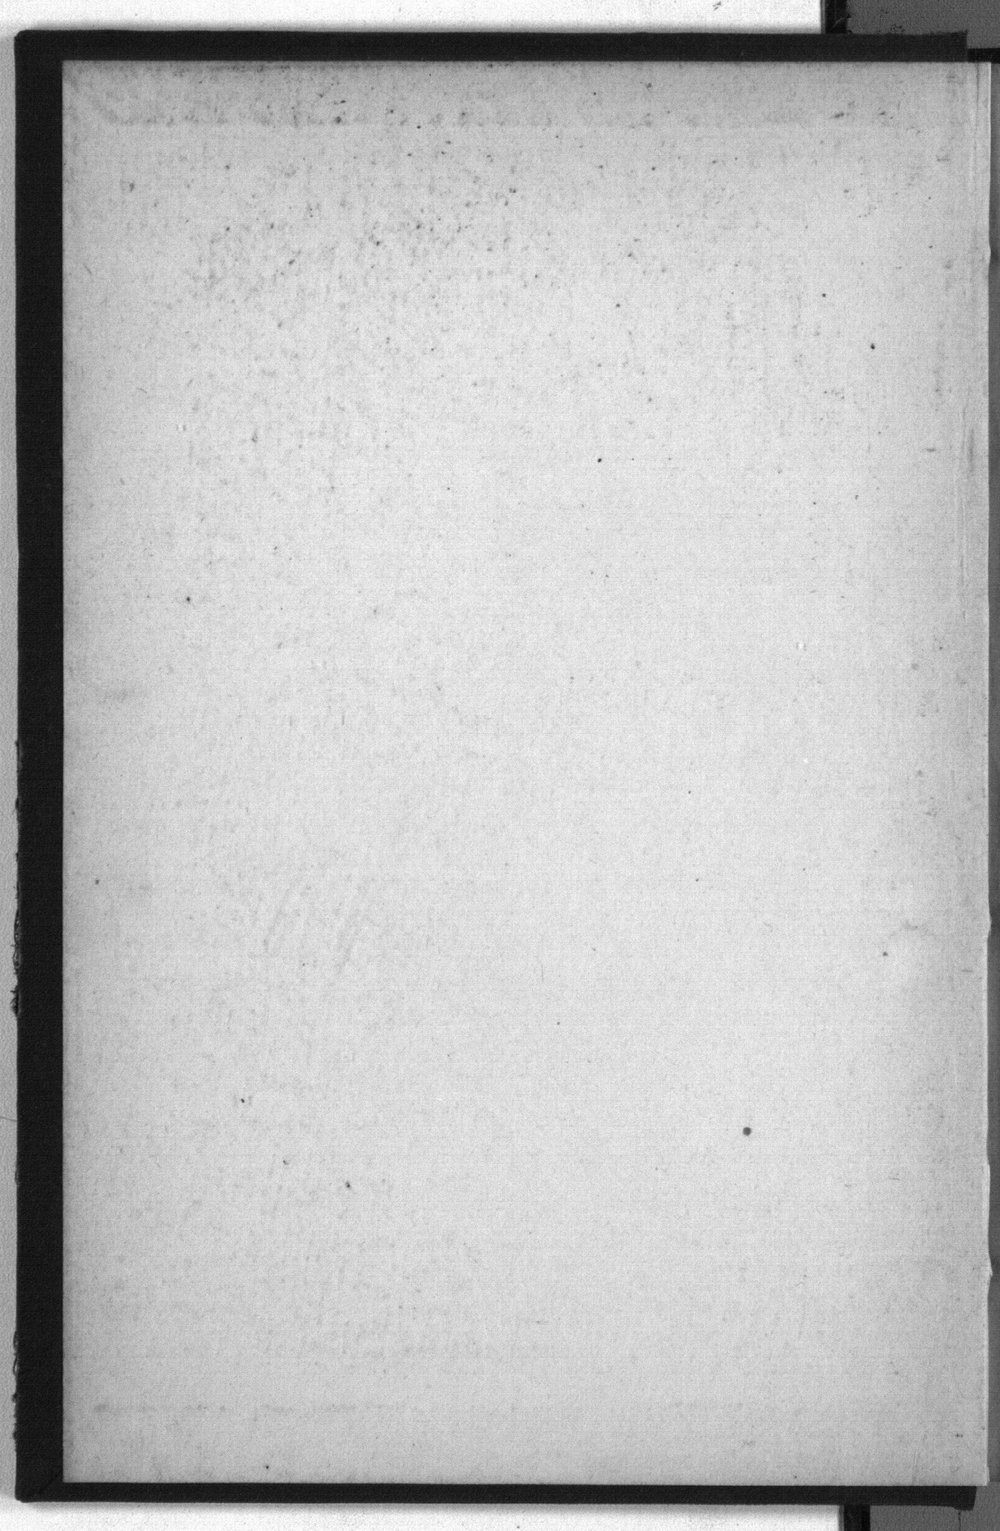 Eighth biennial report of the Kansas State Board of Agriculture, 1891-1892 - Inside Front Cover